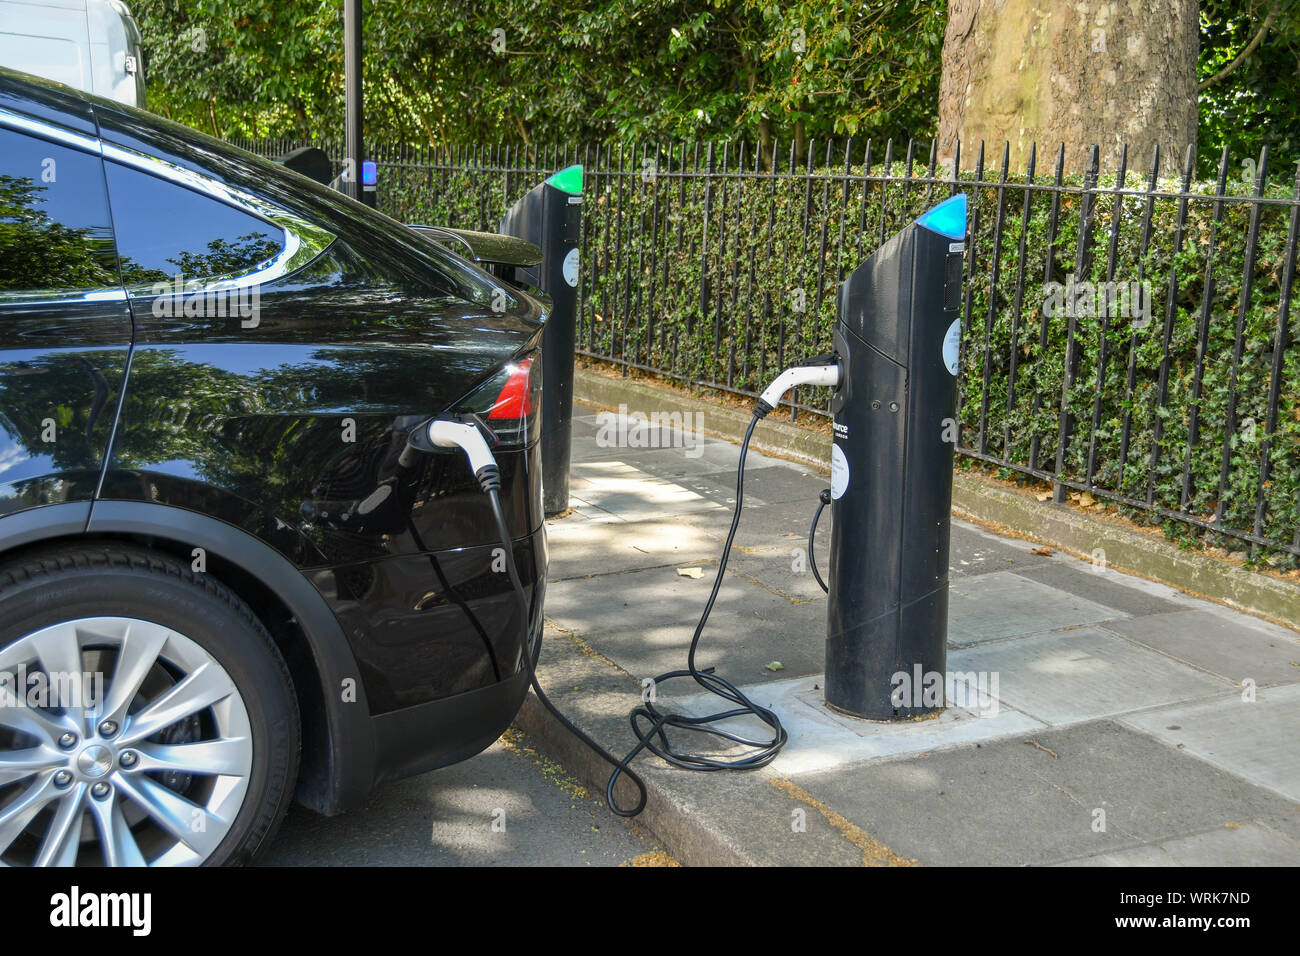 LONDON, ENGLAND - JULY 2018:  Care plugged into a charging point for electric cars kerb-side on a street in central London Stock Photo